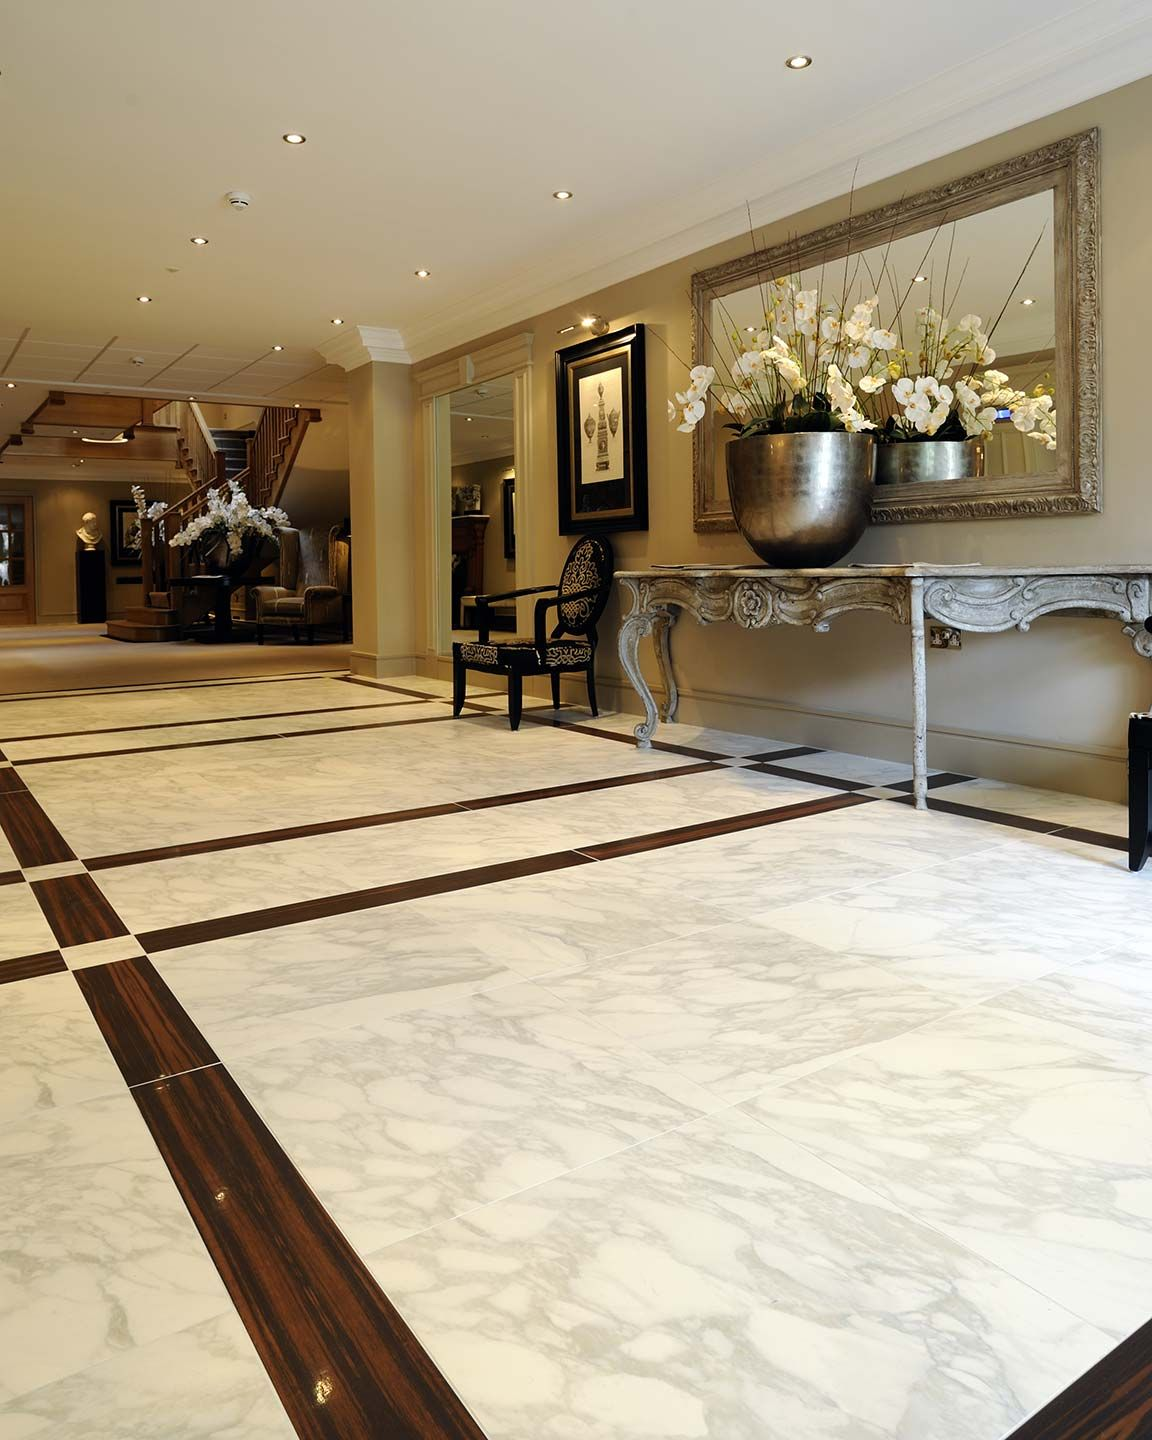 Calacatta Marble Floors Porcelain Tile English Residence Project